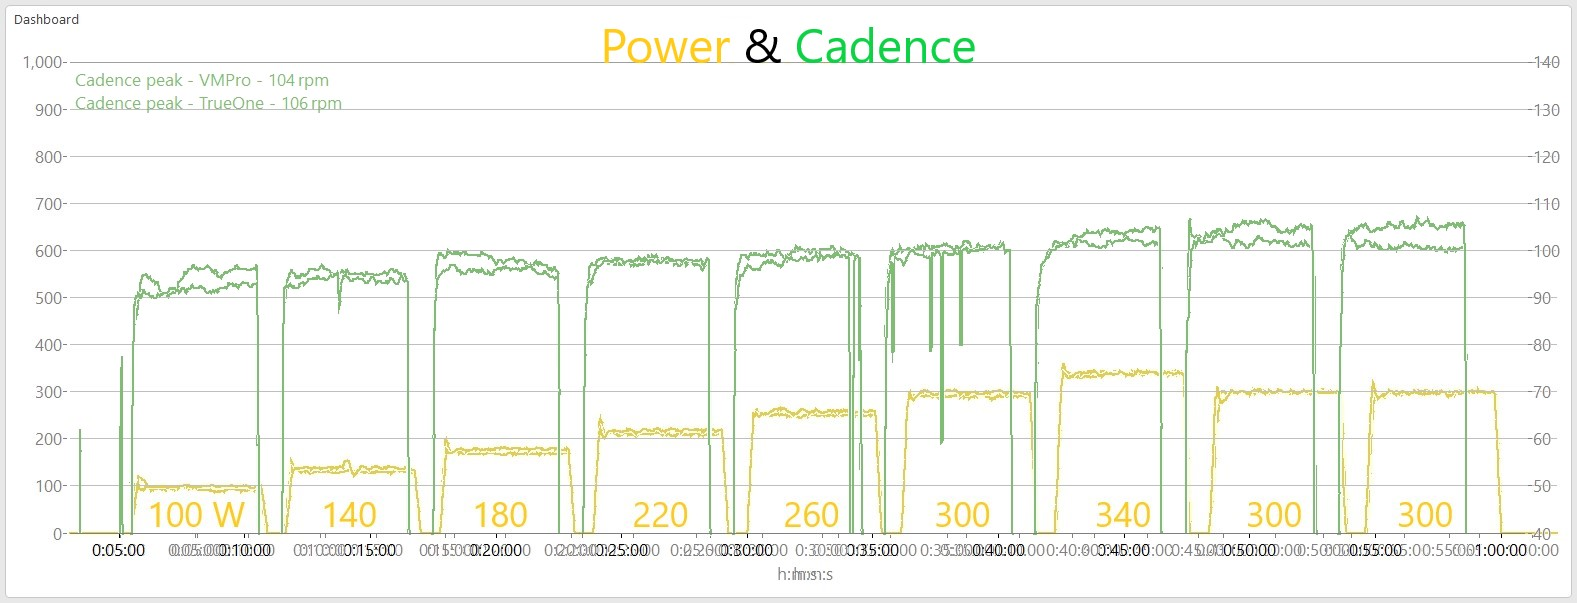 5-1_Power_Cadence_Comparison